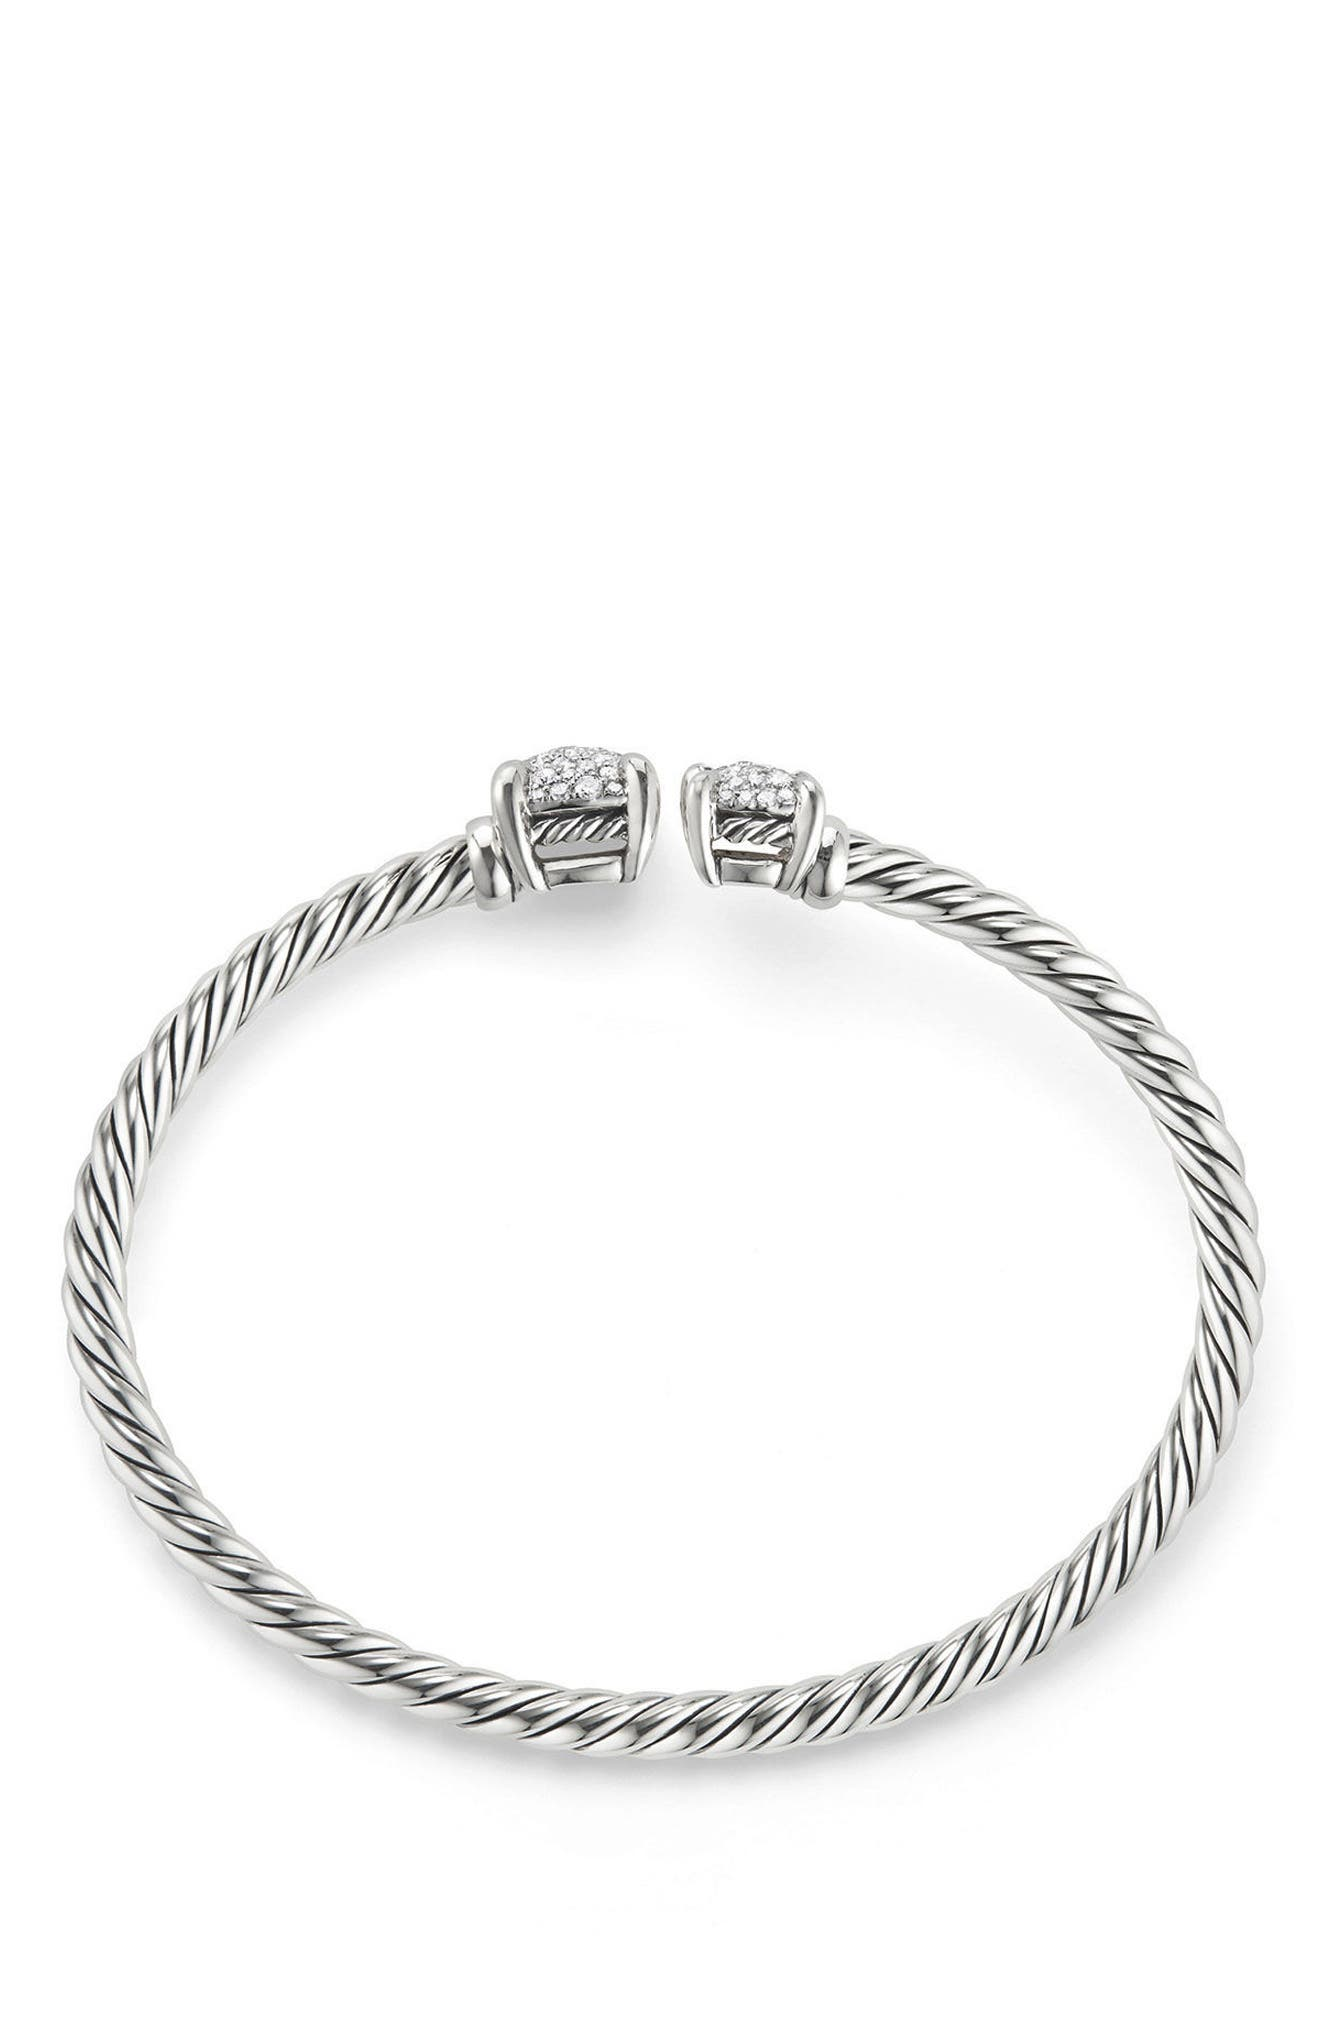 Châtelaine Bypass Bracelet with Diamonds,                             Alternate thumbnail 2, color,                             SILVER